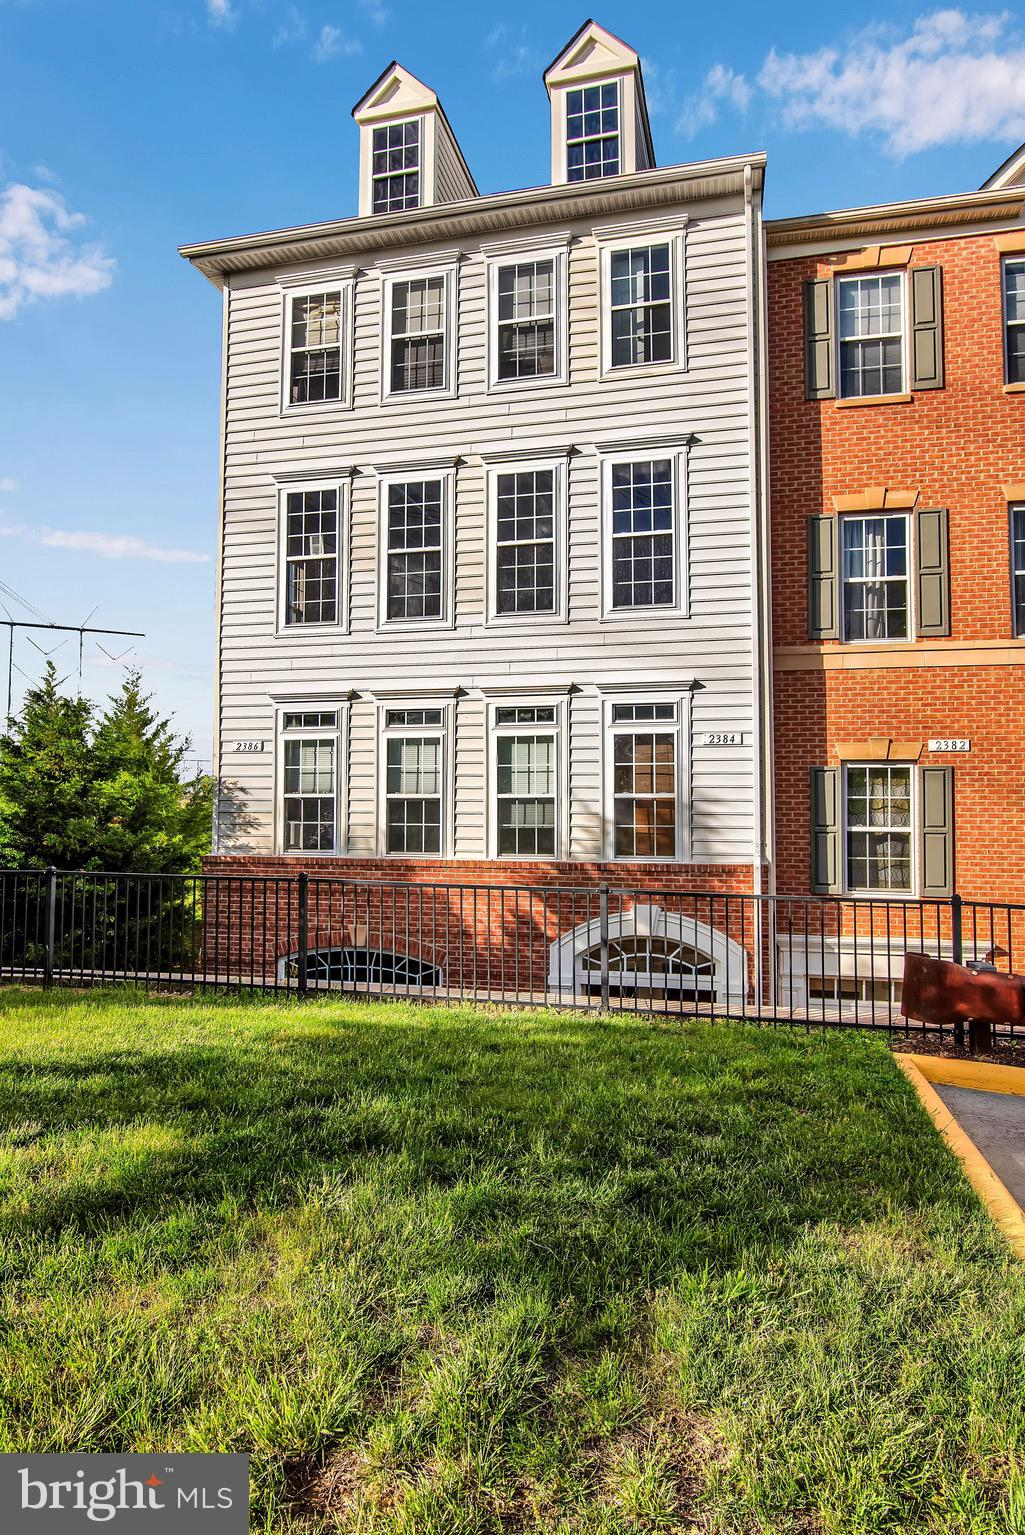 Corner Unit located in the gated - Potomac Club Community, Updated and Fresh Paint throughout. Open Concept, Stainless Steel Appliances, Granite Counter Tops, Large sized Bedrooms, Elegant Master w/ Bath & Two Custom Walk-In Closets. Across from Stonebridge Shopping Center, Close to I-95, Rt. 1, and VRE.